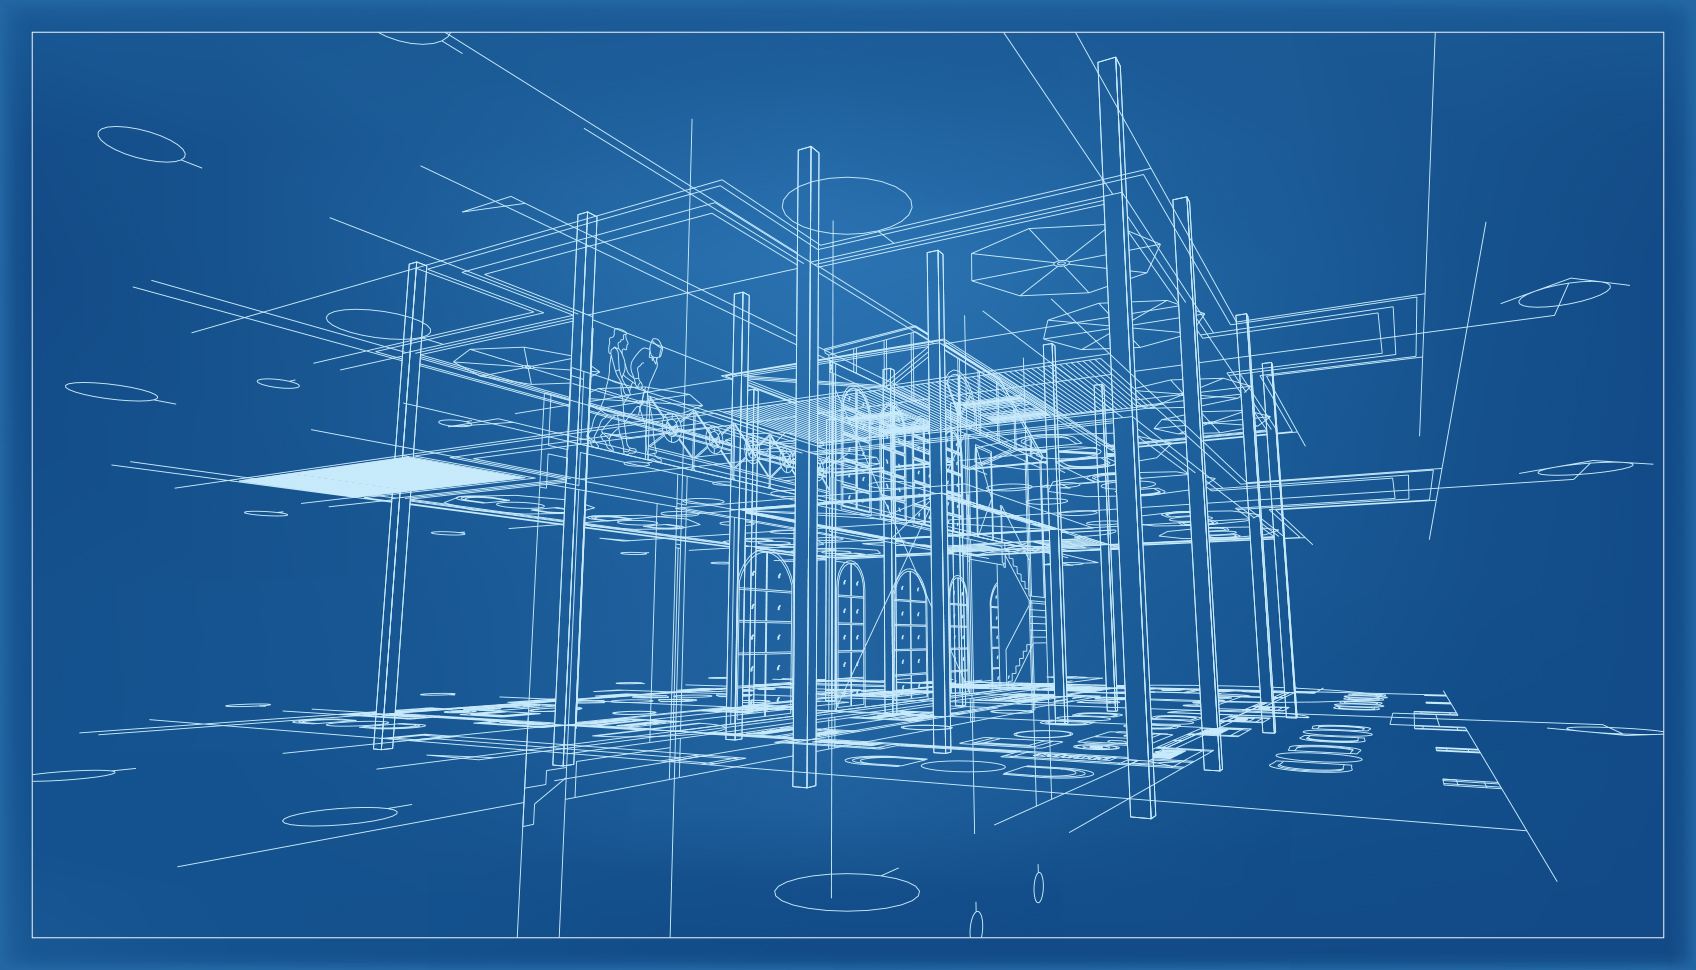 Blue prints house plans sorell consulting ltd blue prints house plans malvernweather Image collections